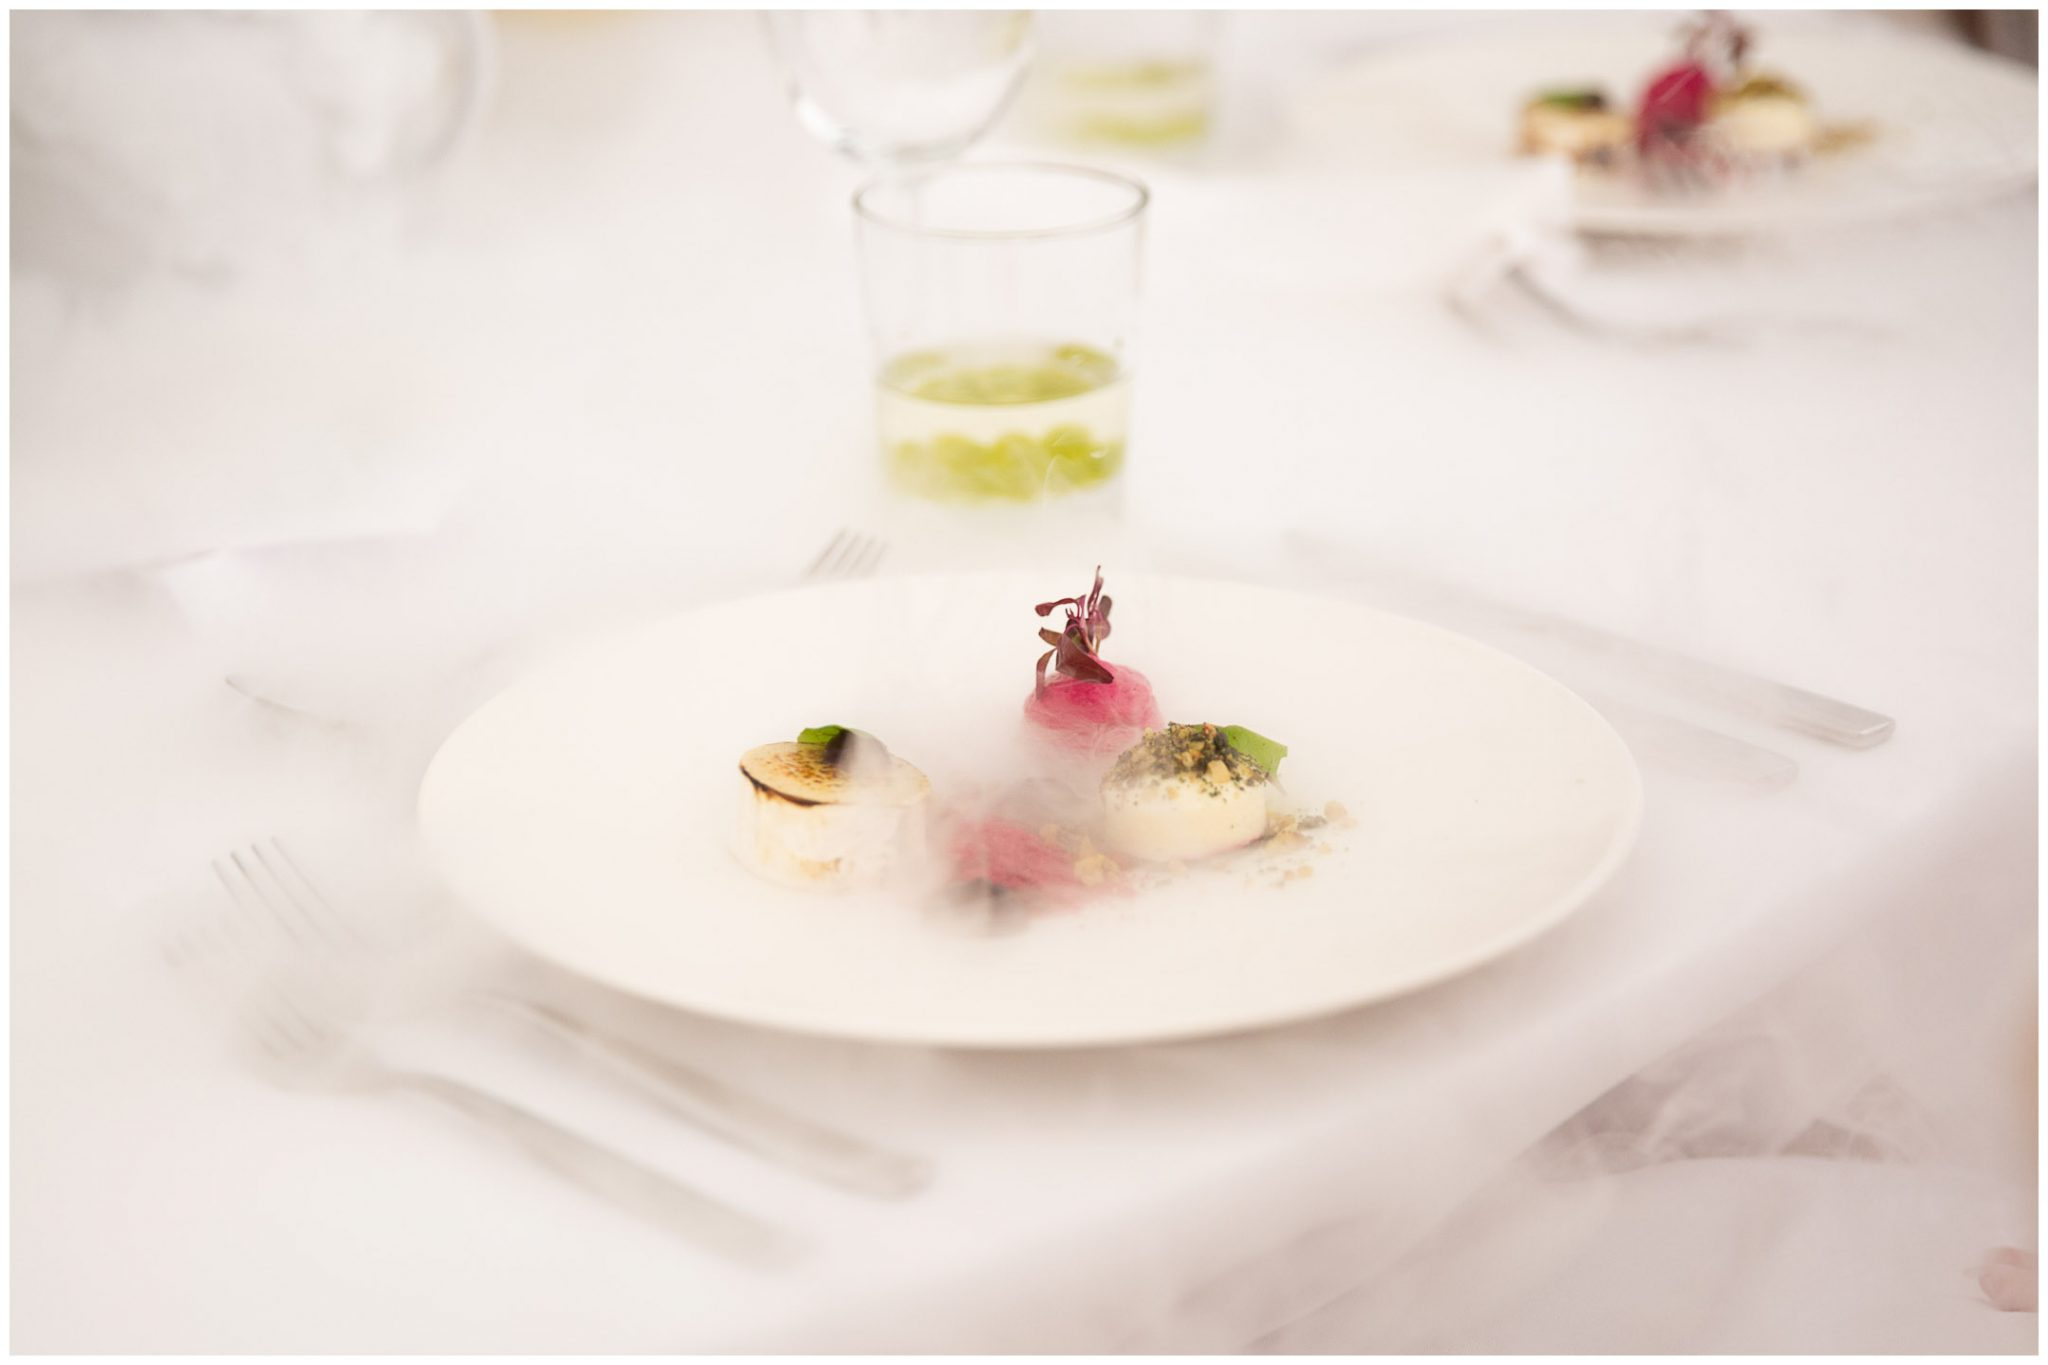 Goats cheese and beetroot starter with dry ice